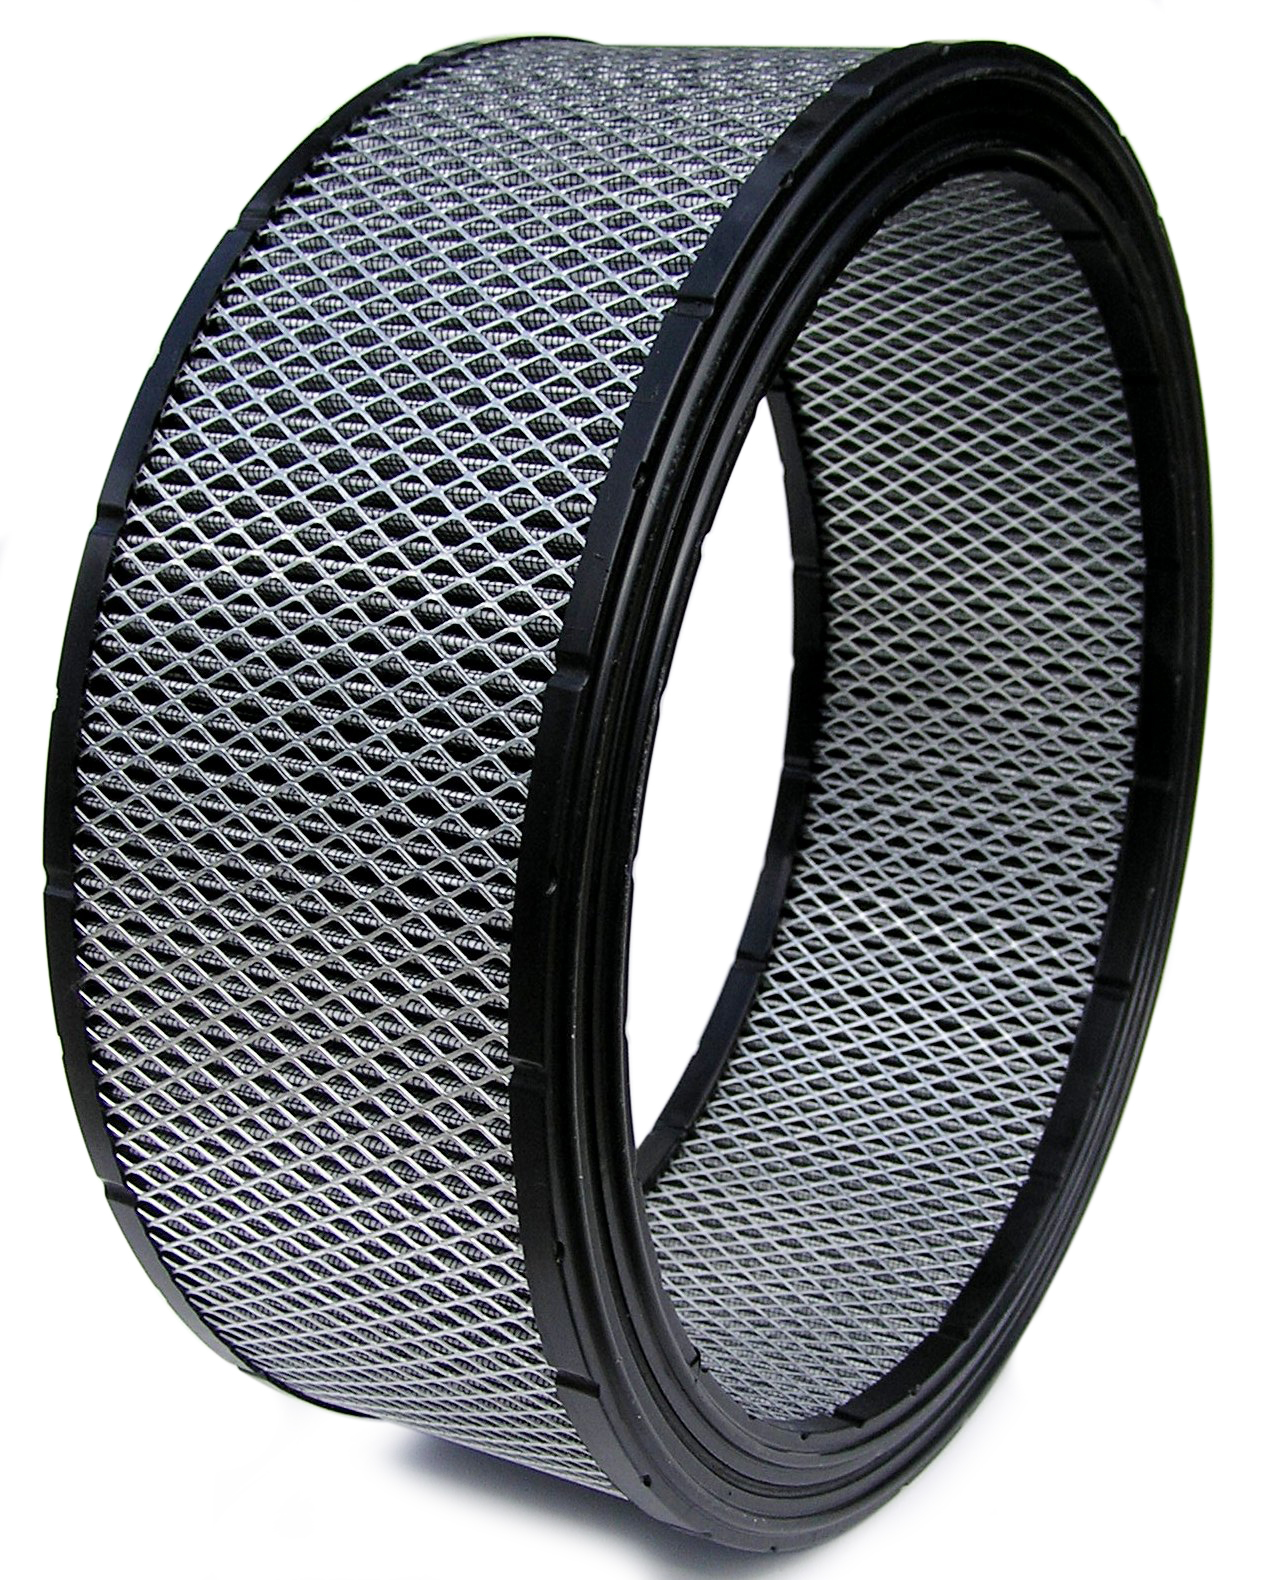 Air Filter 14in x 5in High Performance Street